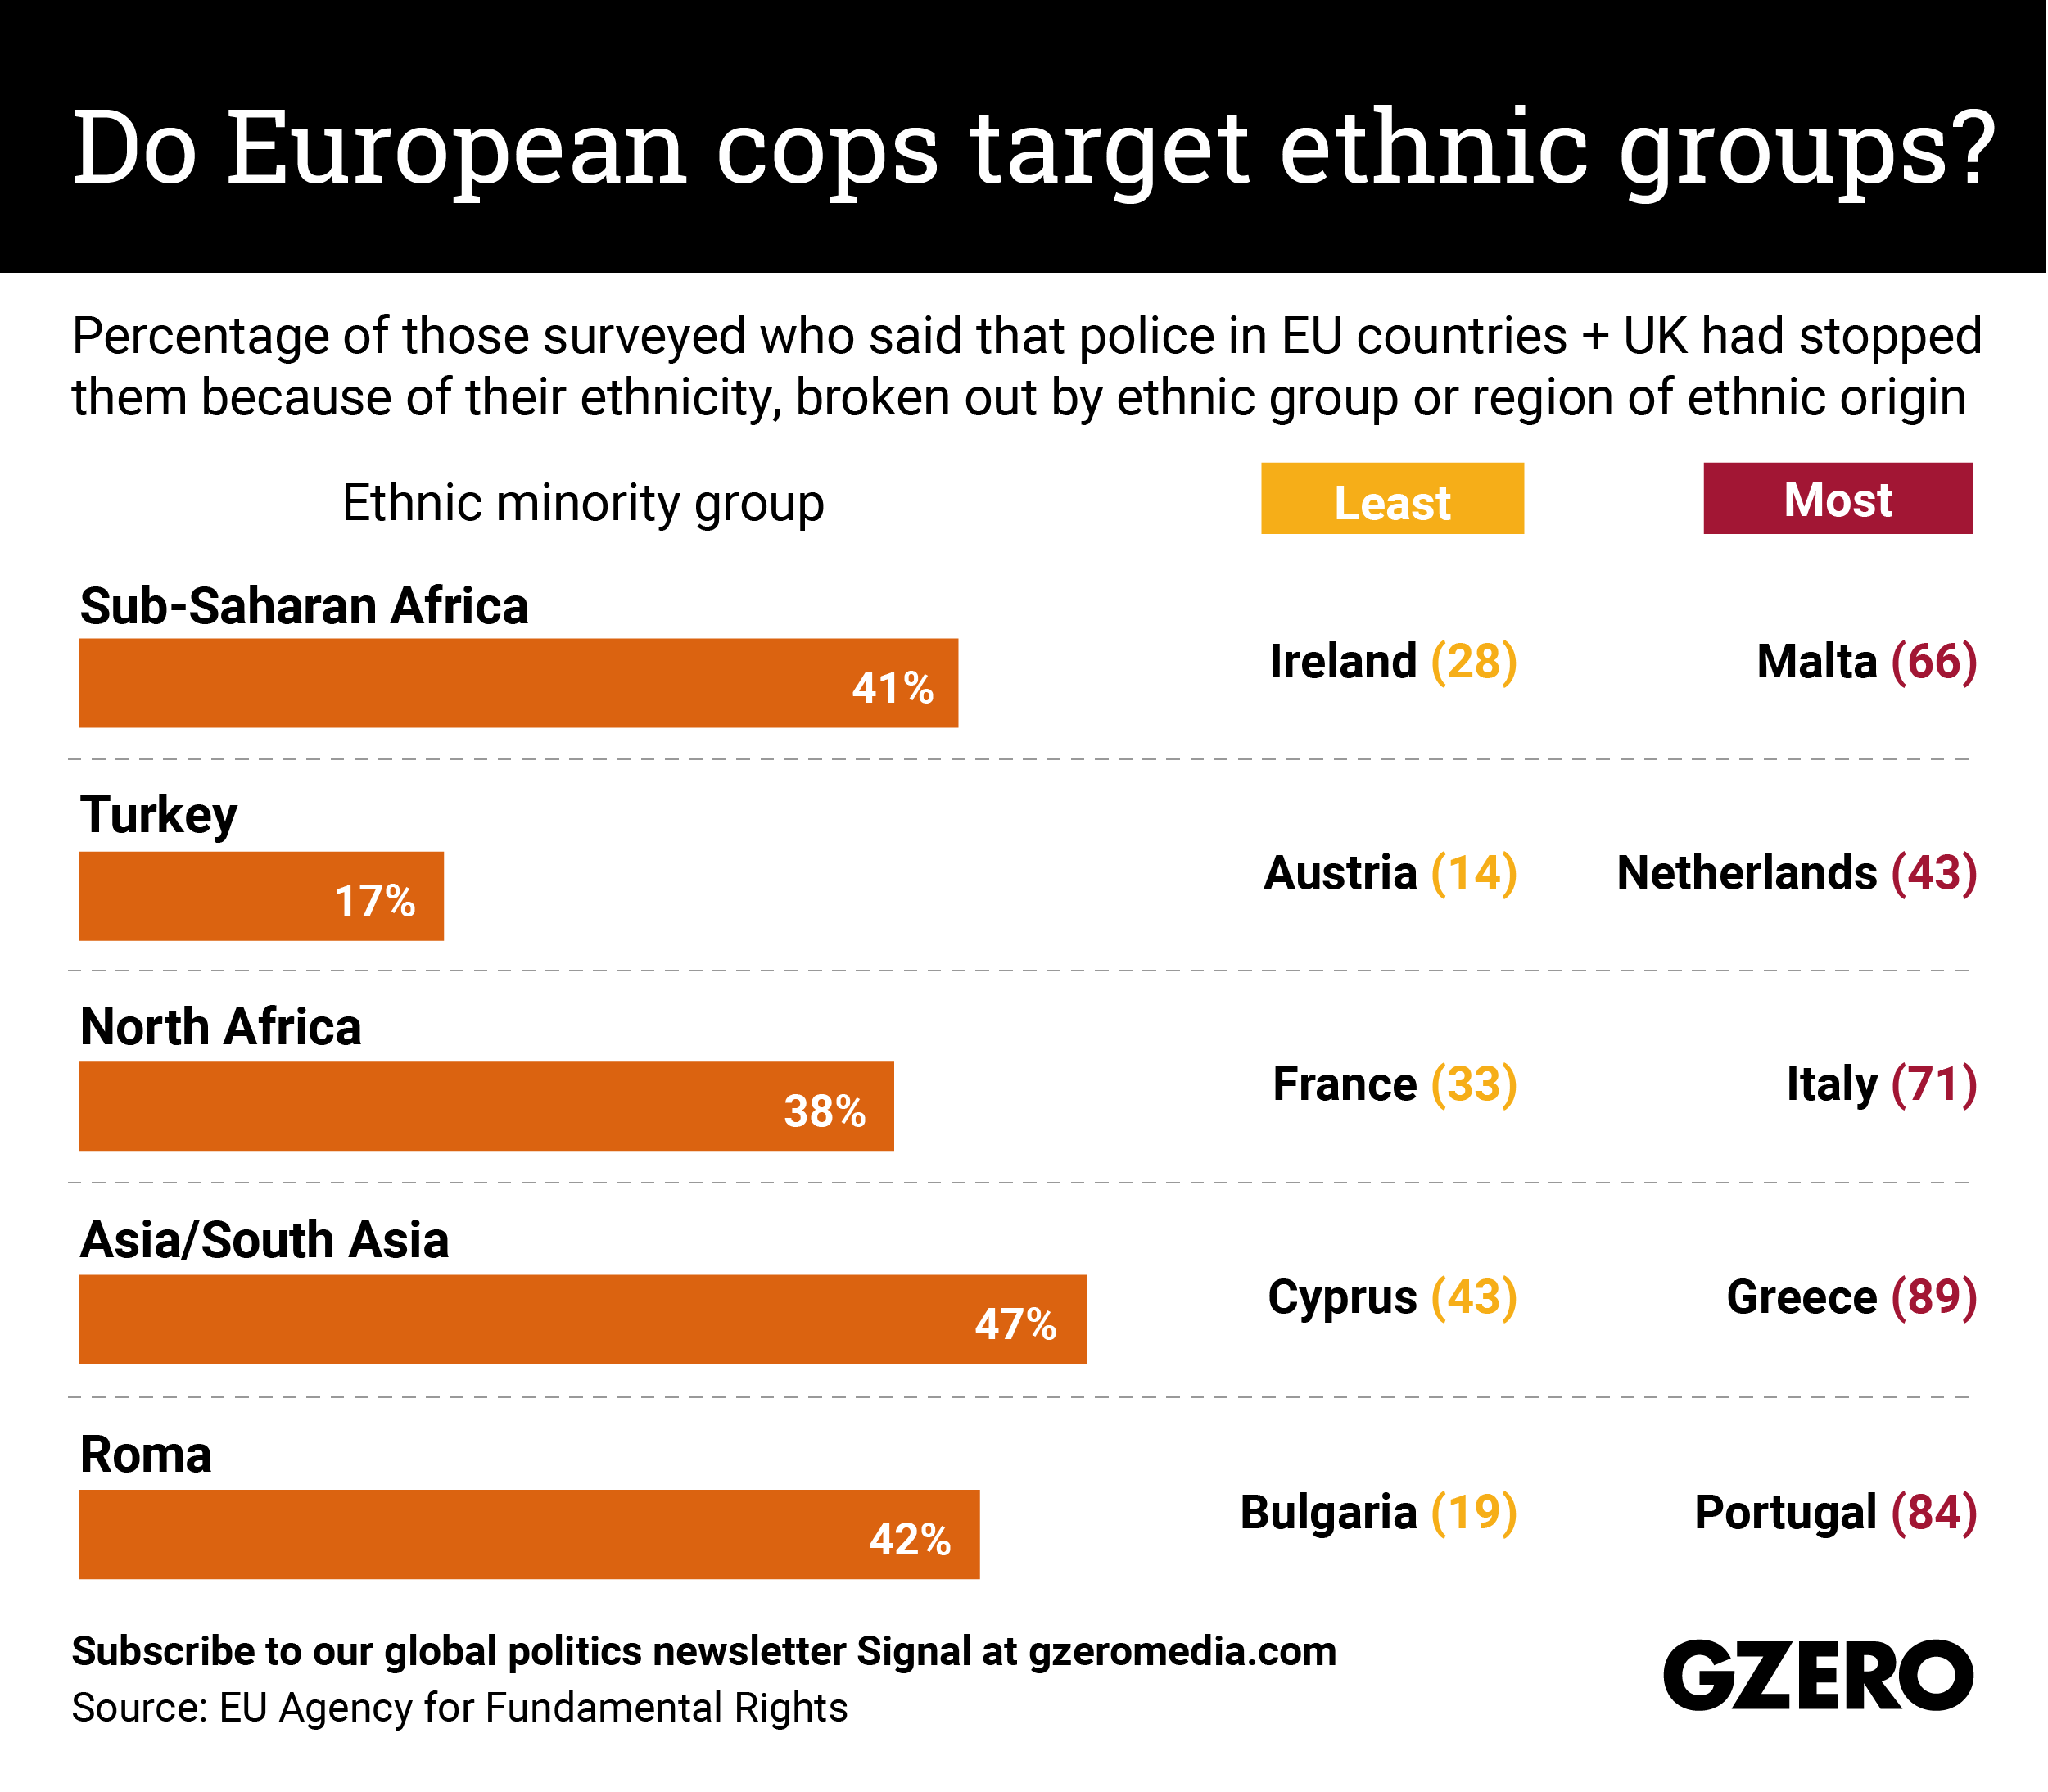 The Graphic Truth: Do European cops target ethnic groups?